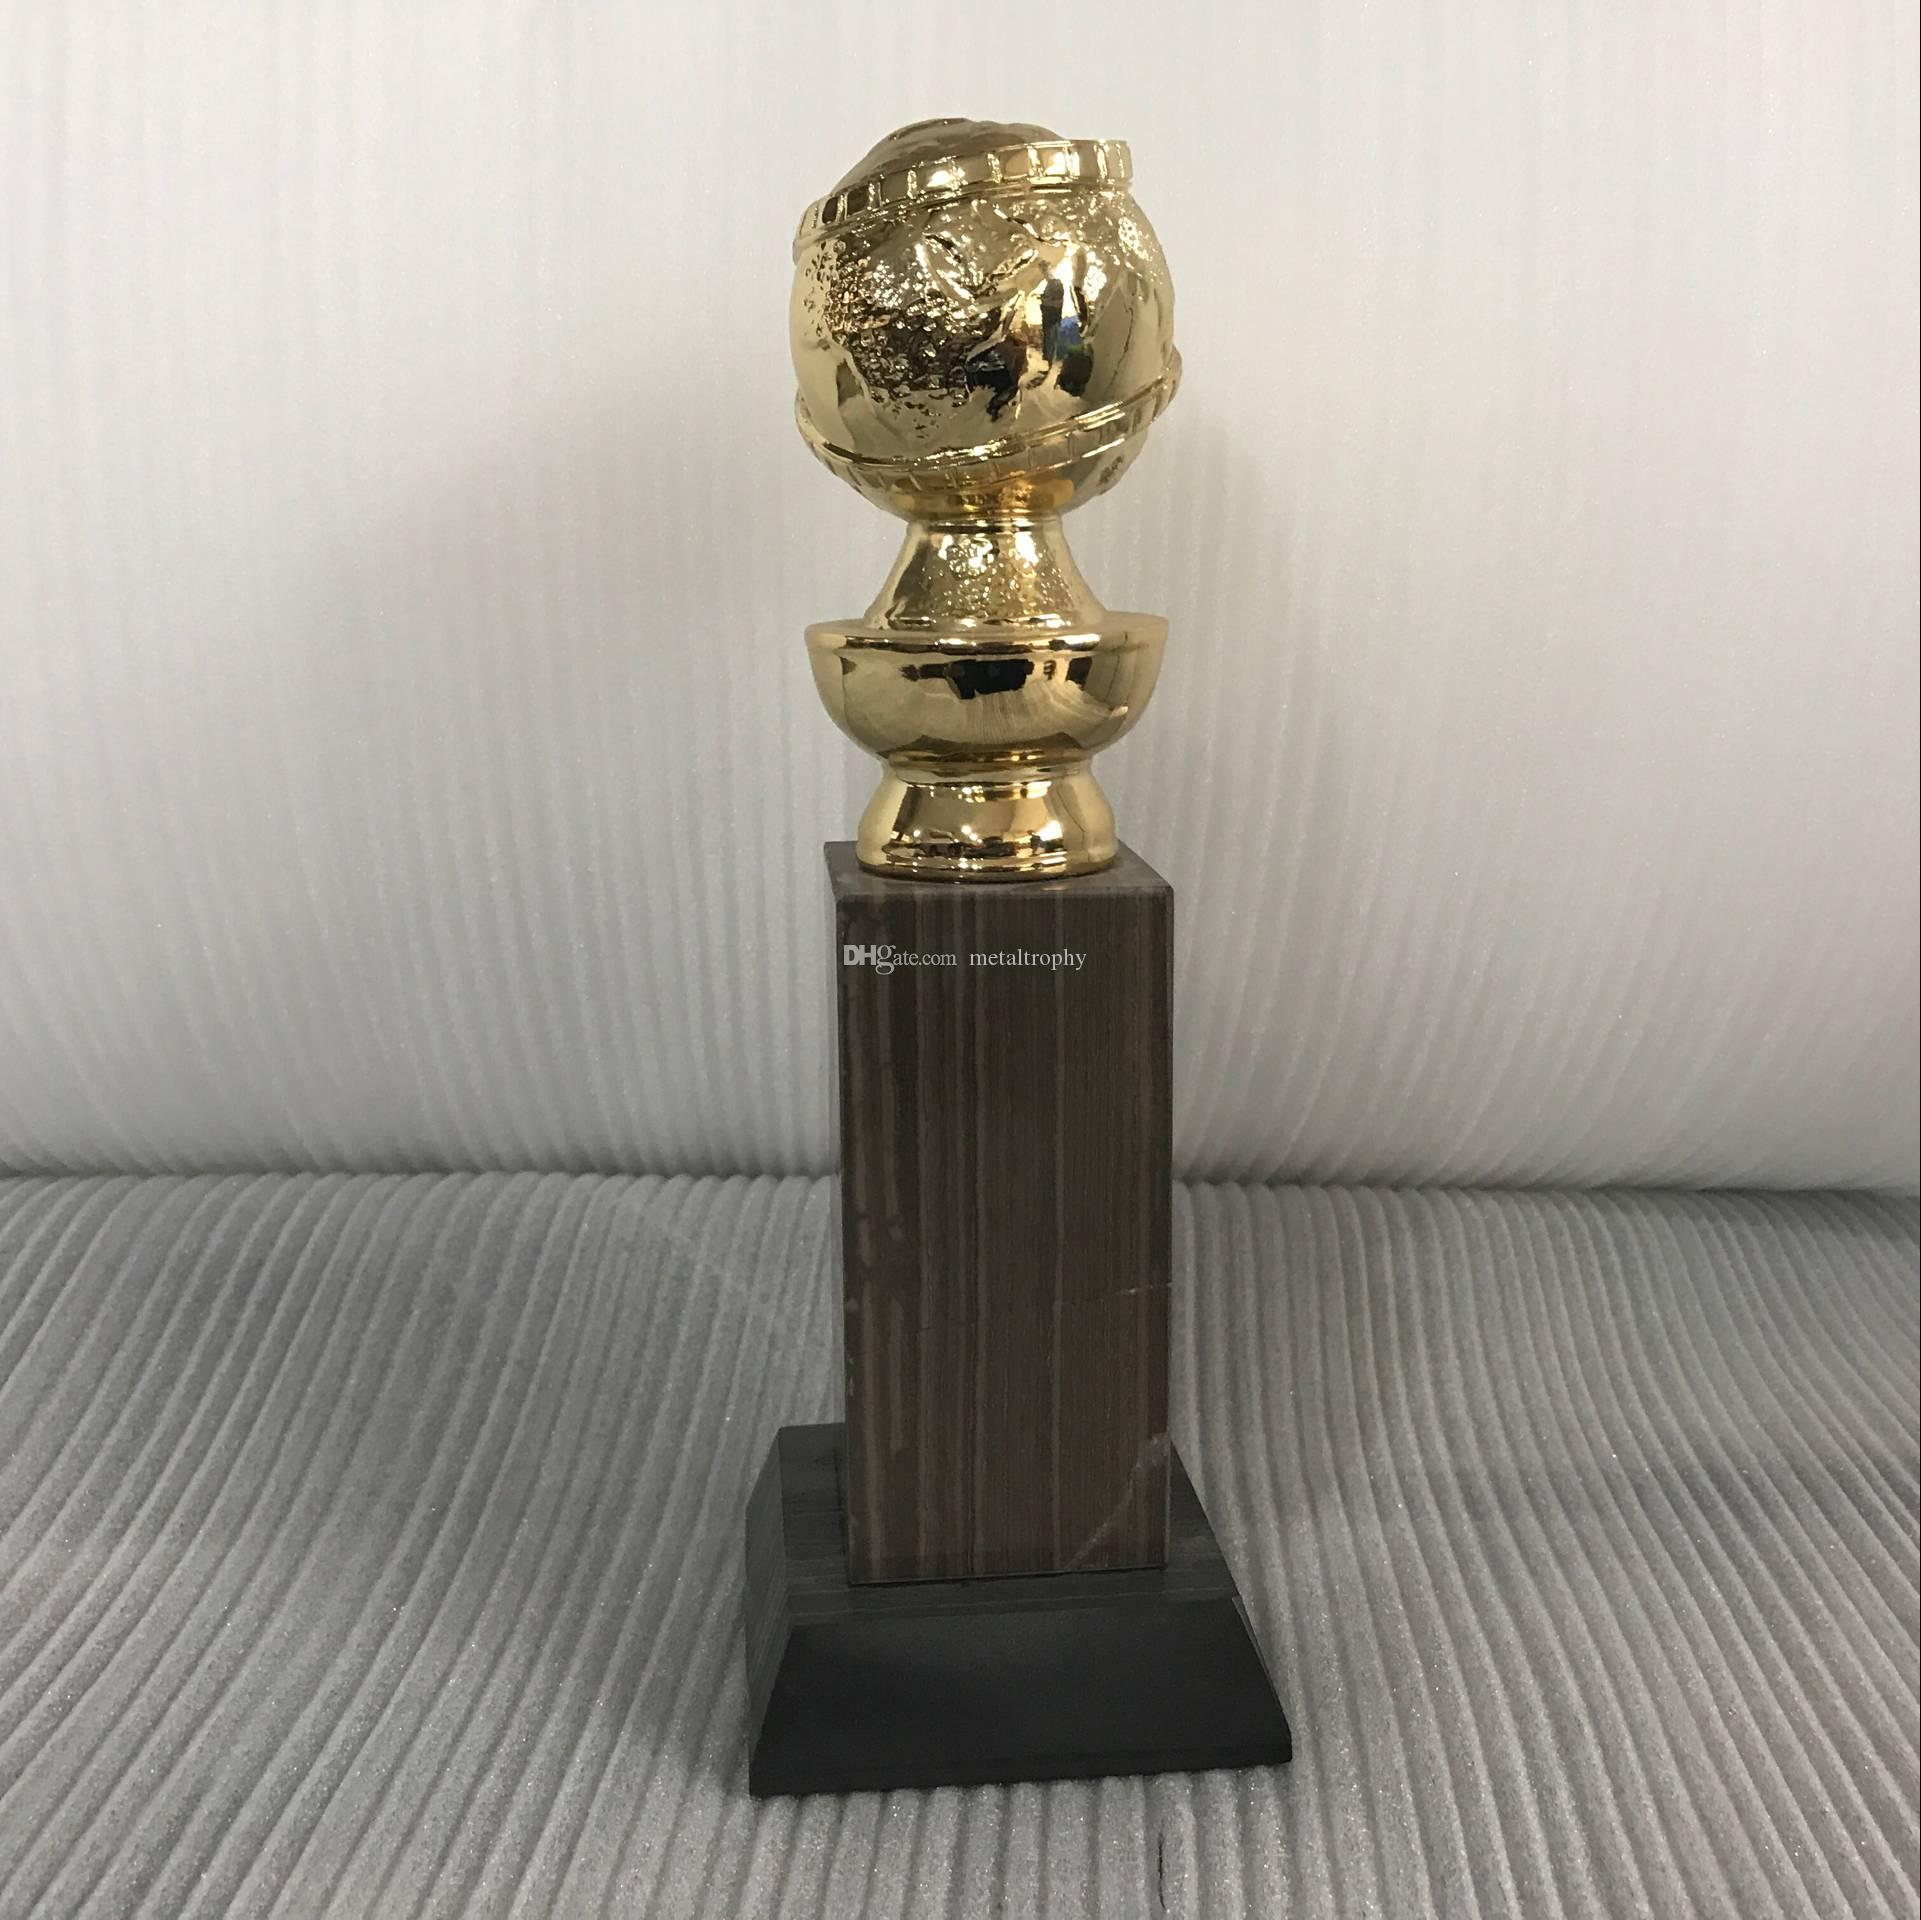 Golden Globe Award Trophy (10 Inches) with HFPA Logo Stamped In Gold-26cm high gold color good Free Shipping Golden Globe